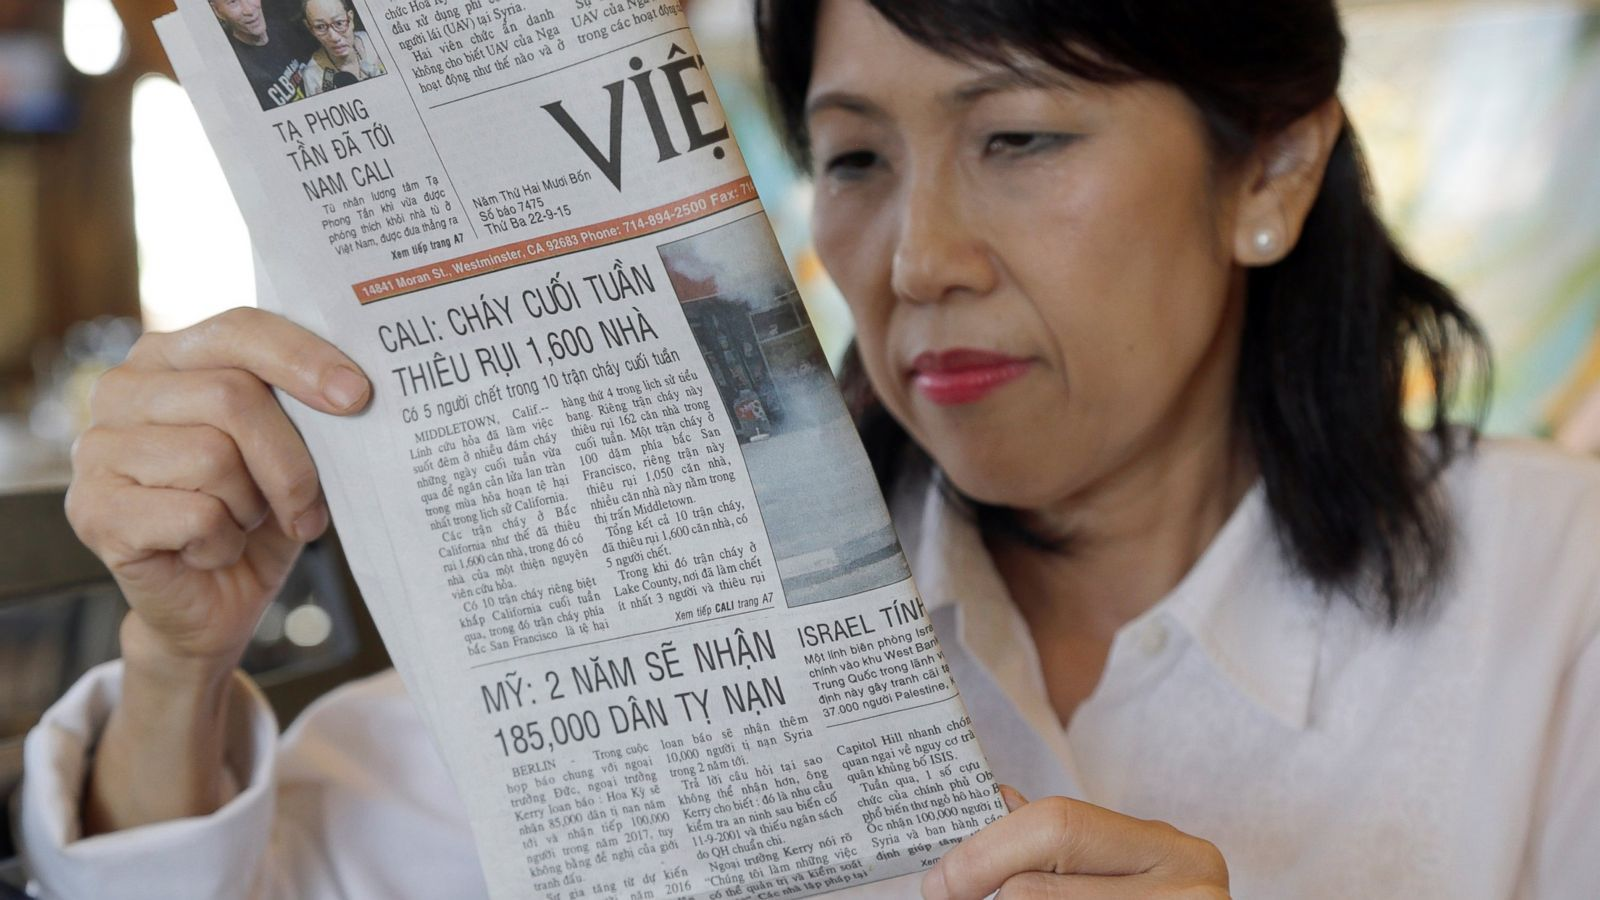 More than three decades ago, Vietnamese began fleeing in tiny boats after their country fell to communist rule. Seeing their community's story in the plight of those boarding boats for Europe, some Vietnamese Americans in California are reaching out.